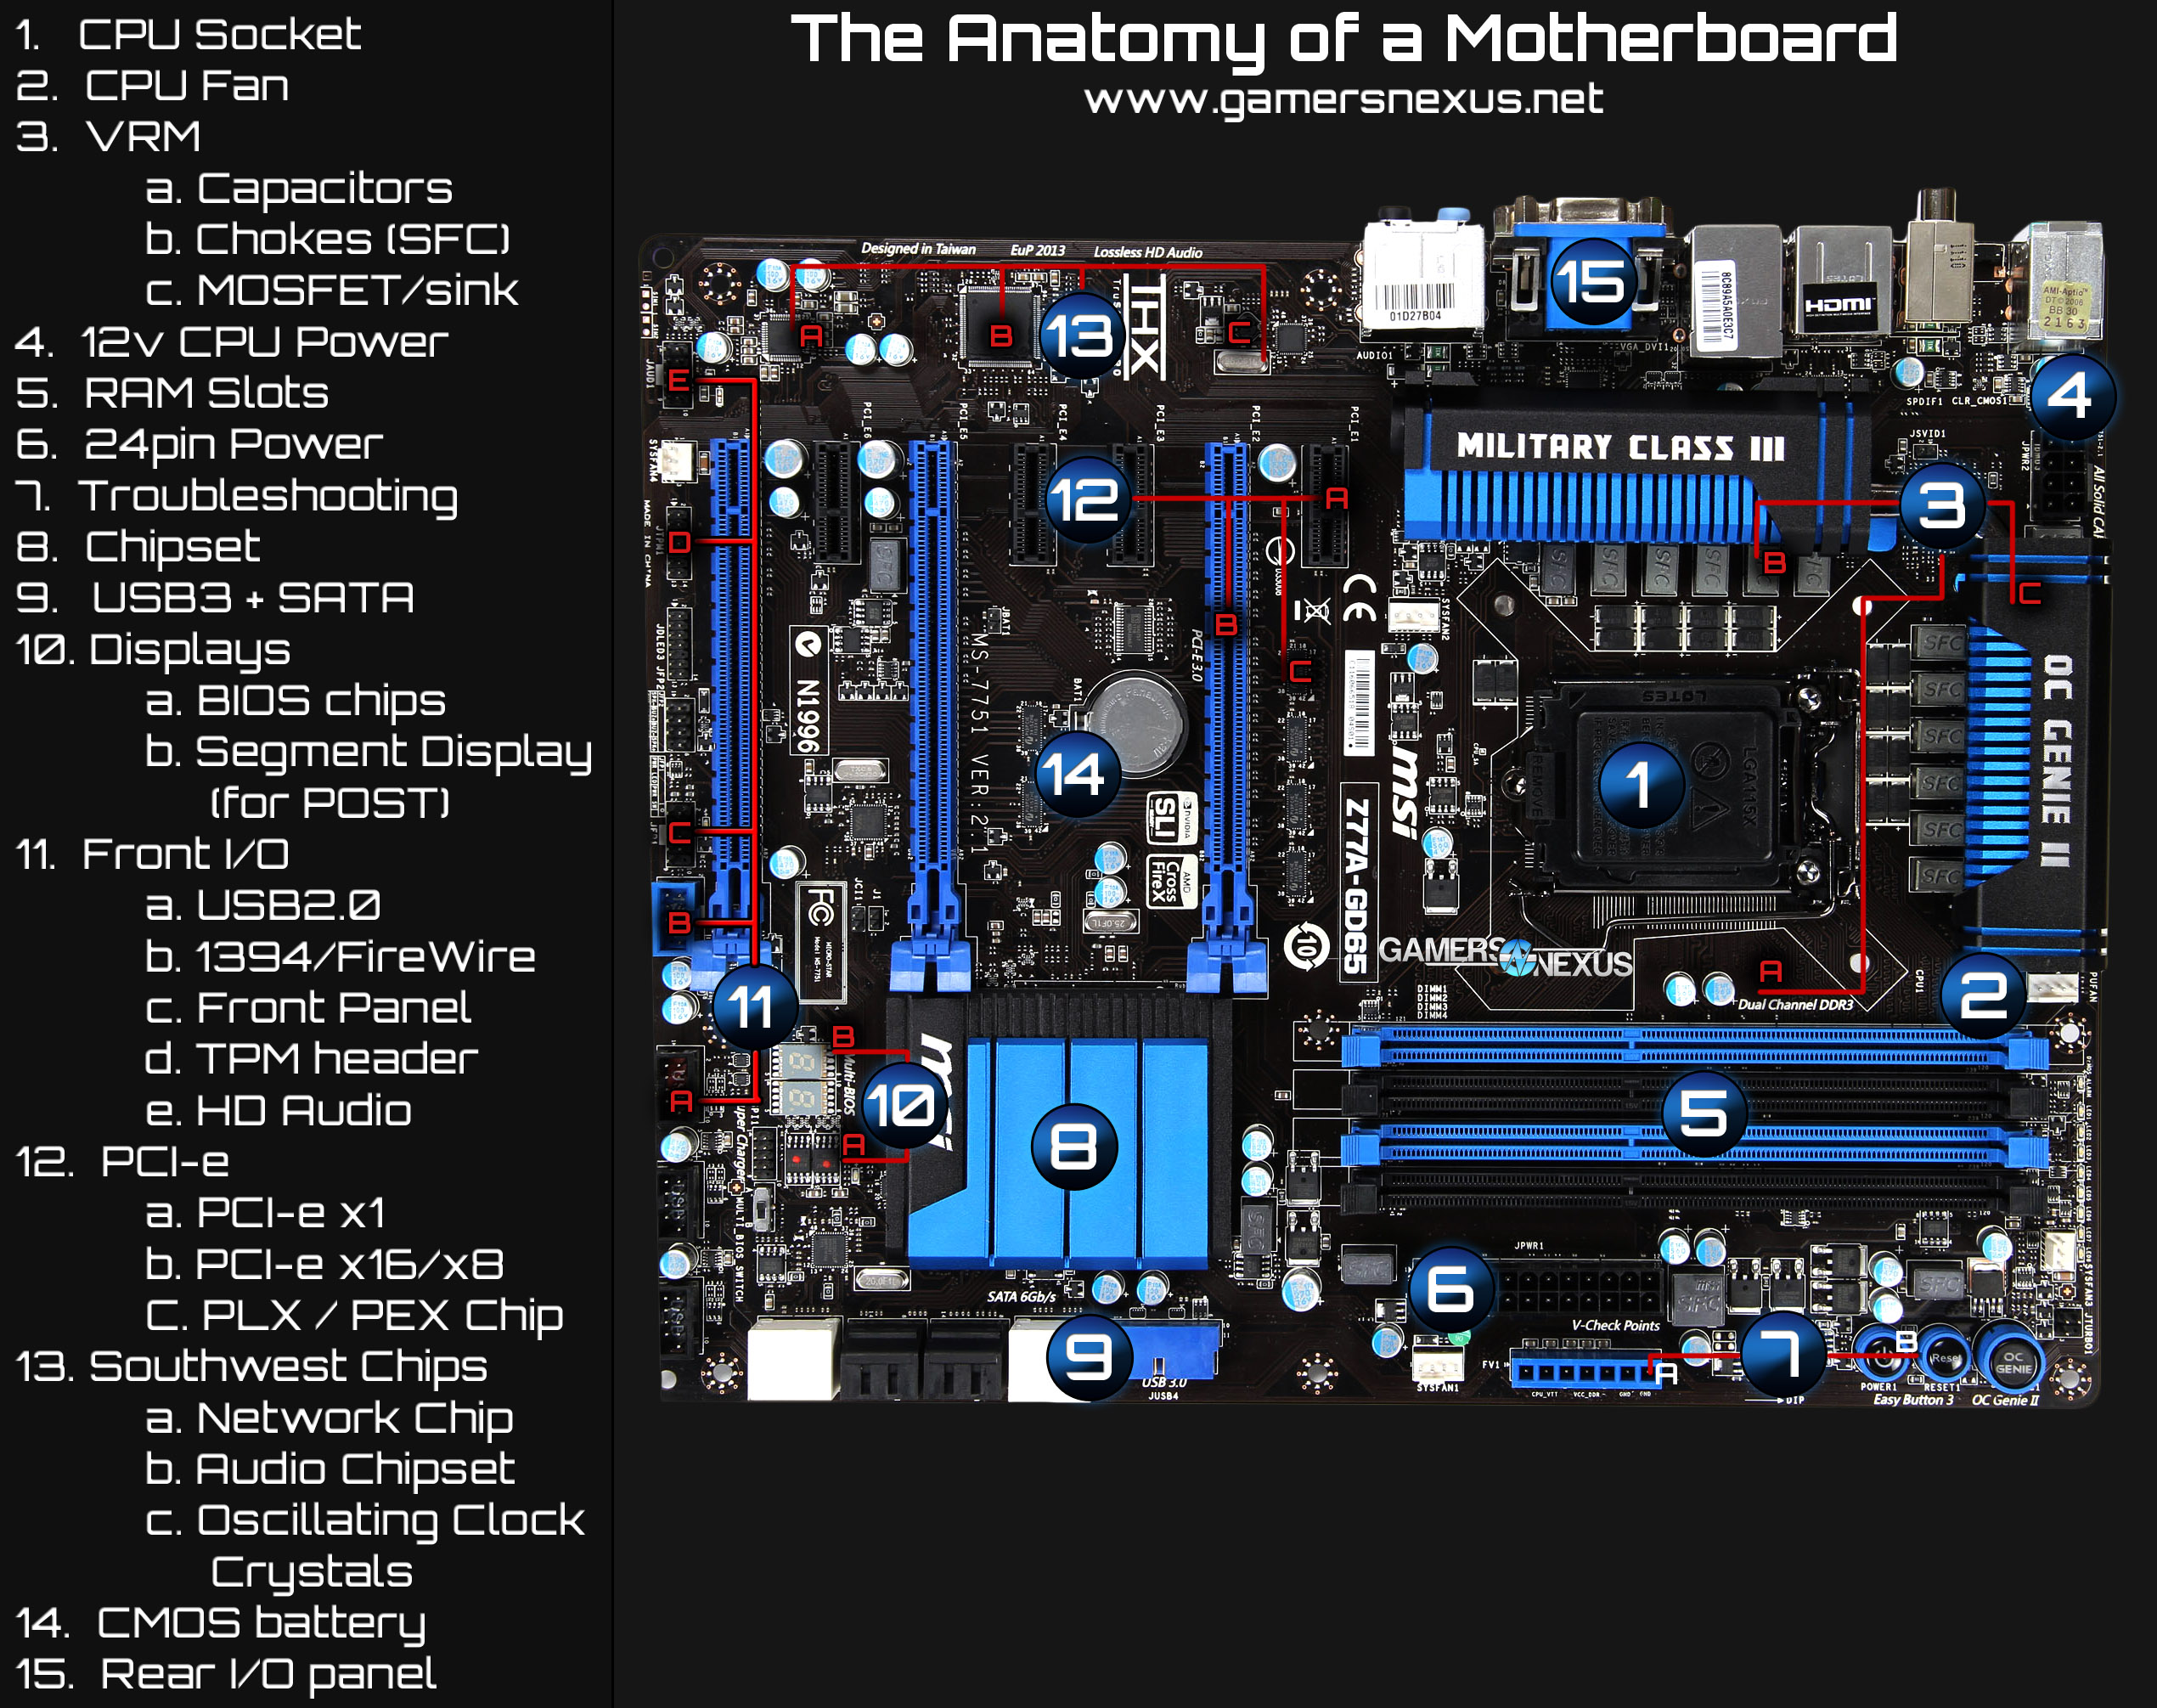 Motherboard Drawing: Anatomy Of A Motherboard: VRM, Chipset, & PCI-E Explained